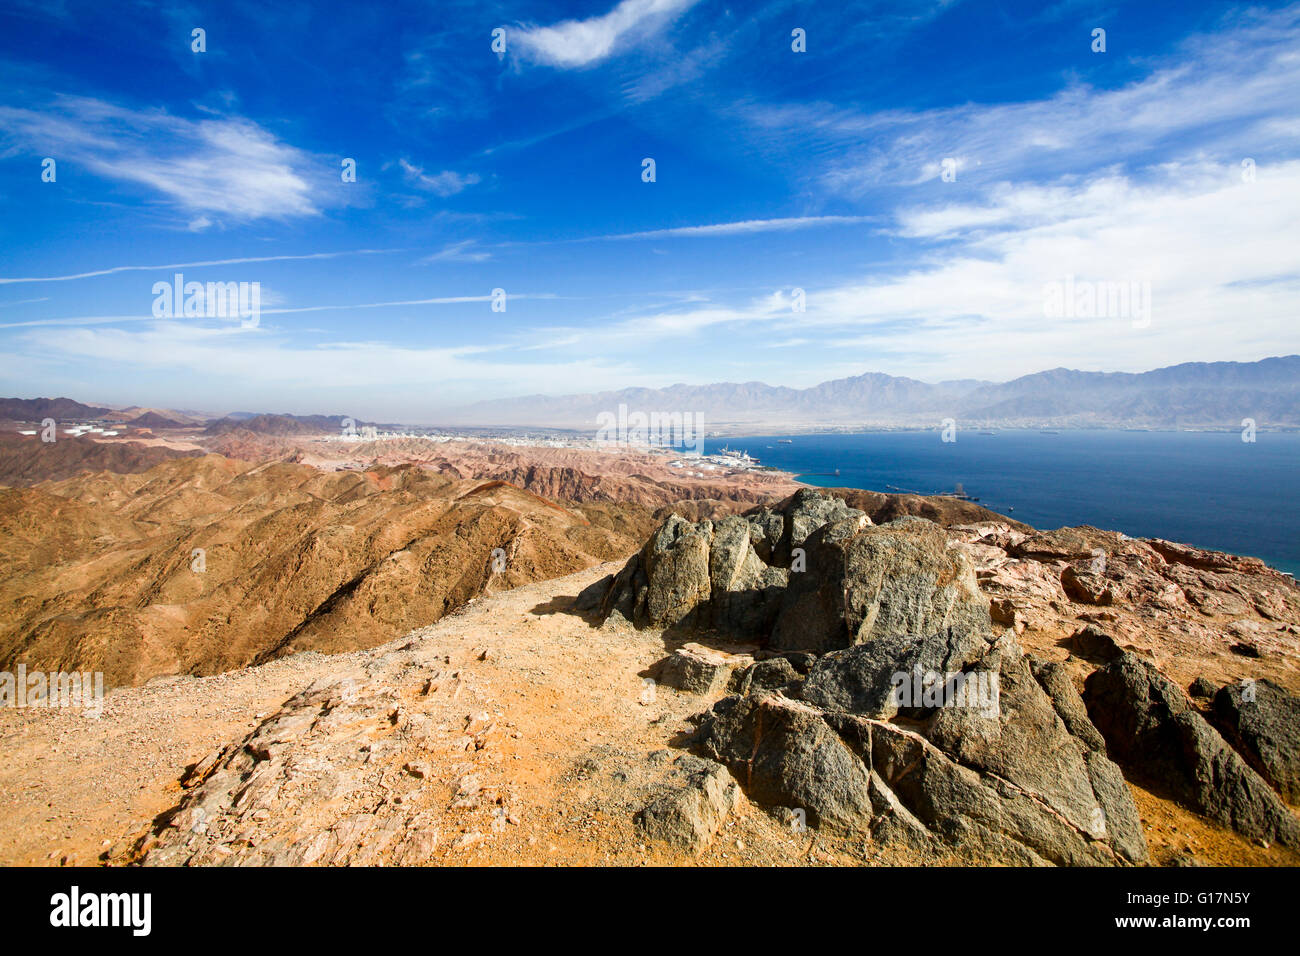 Eilat mountain range with The gulf of Aqaba in background, Israel - Stock Image